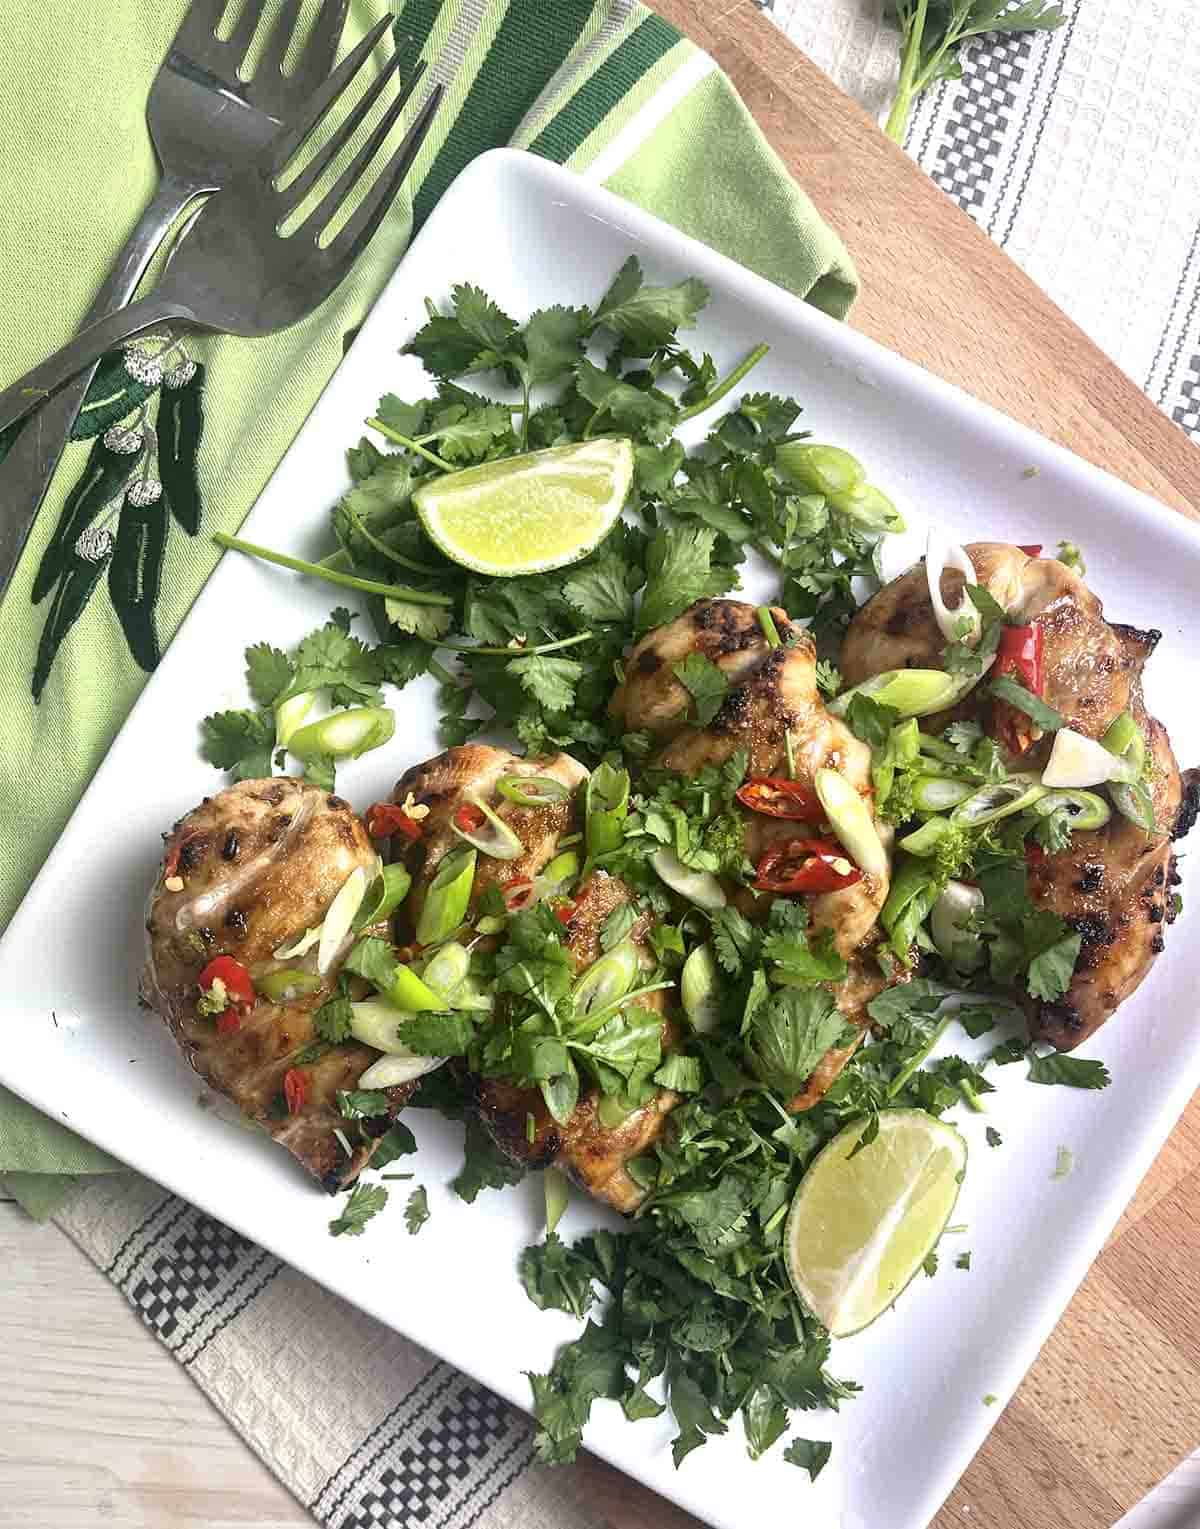 grilled chicken on a plate with garnishes.